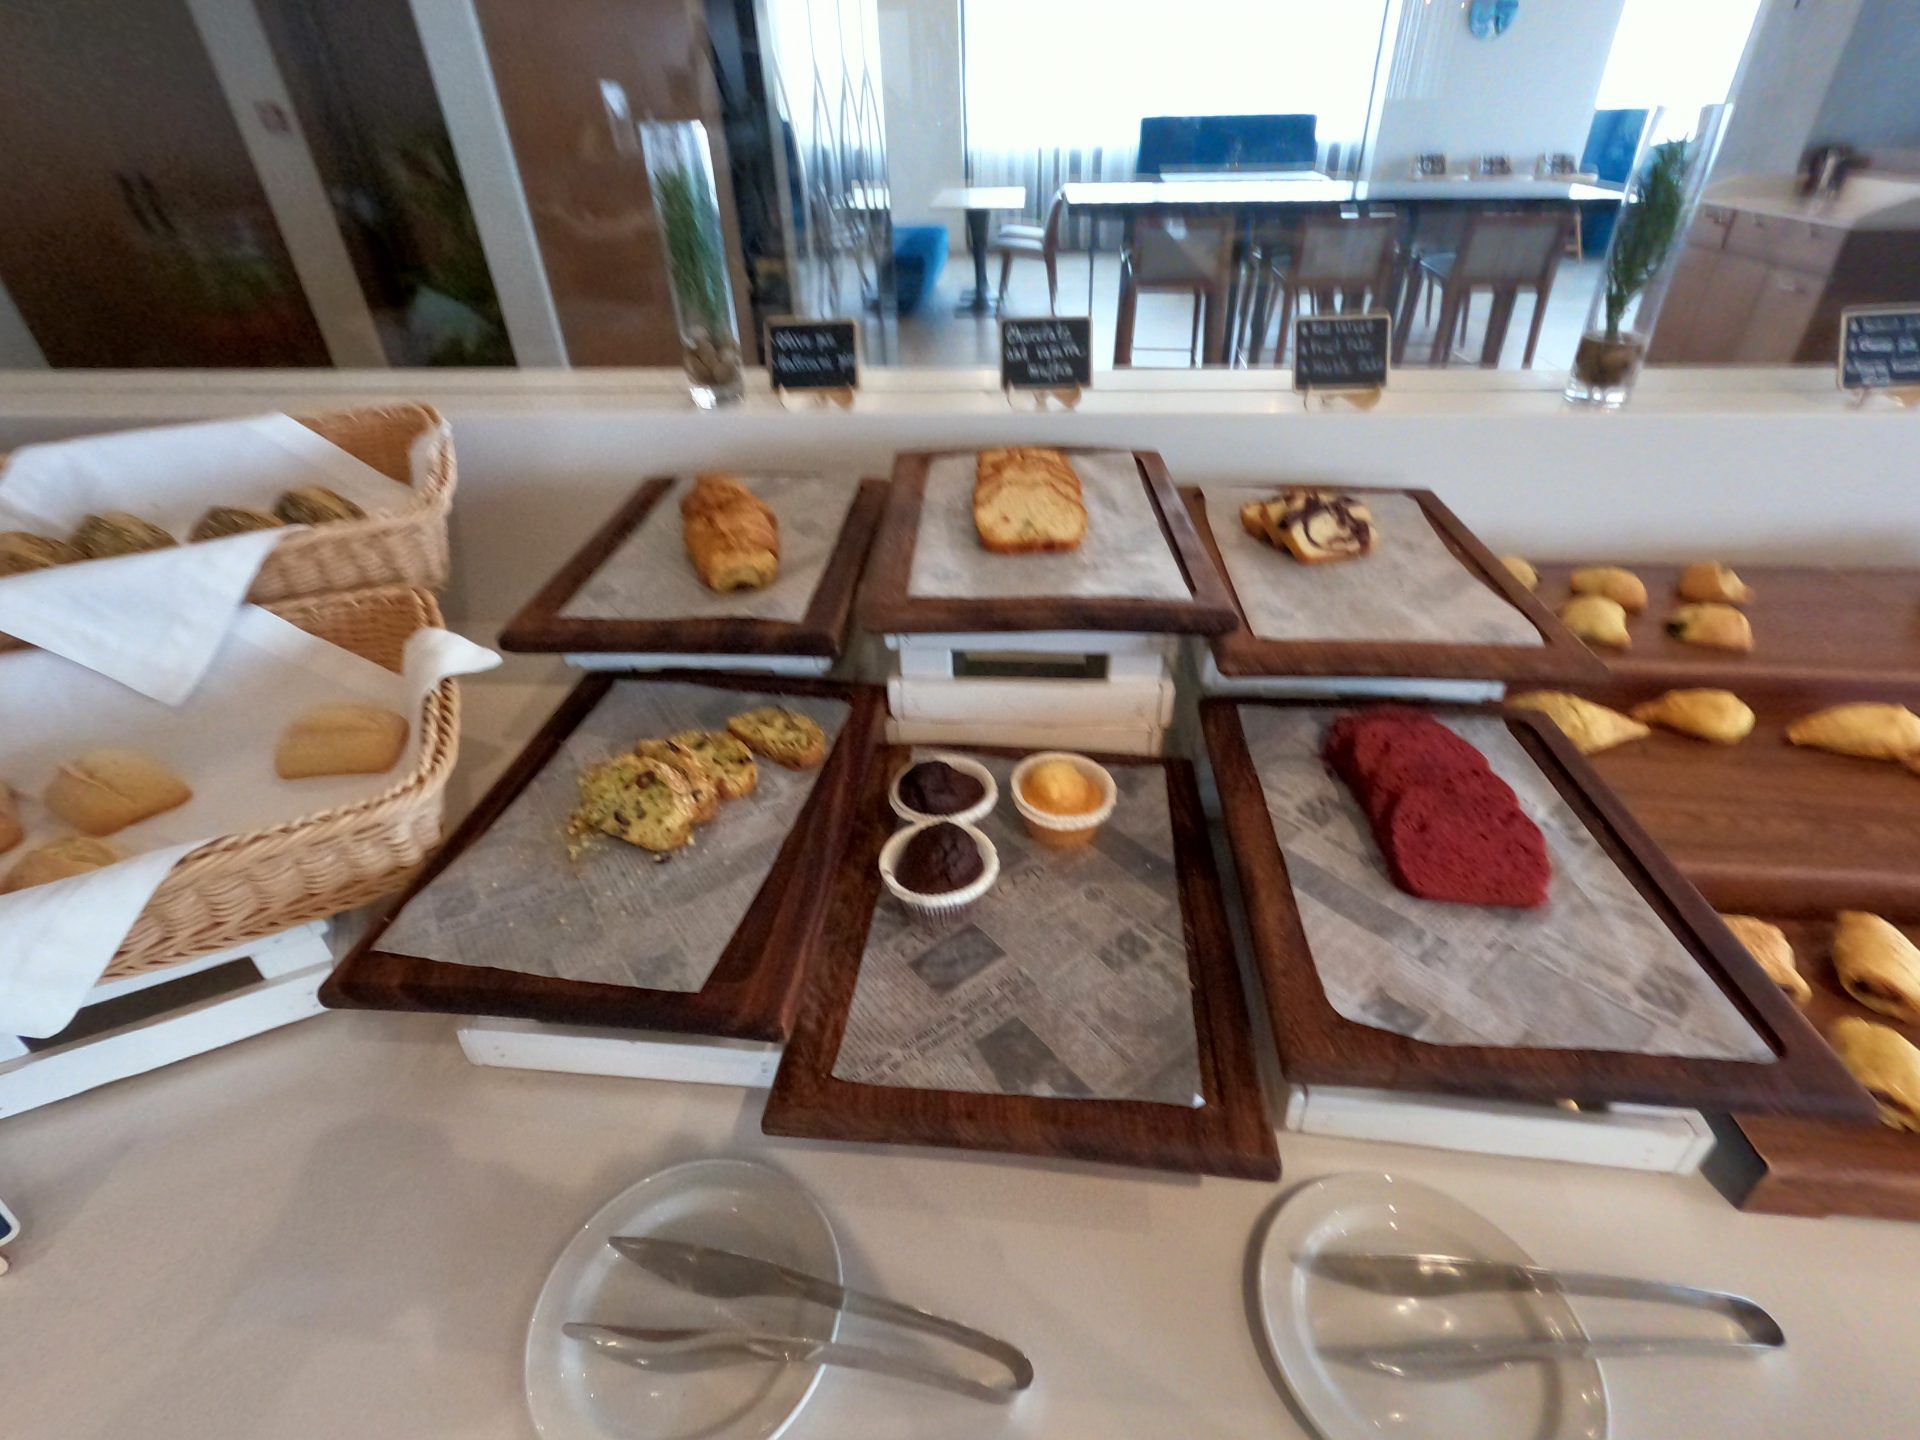 All types of pastries